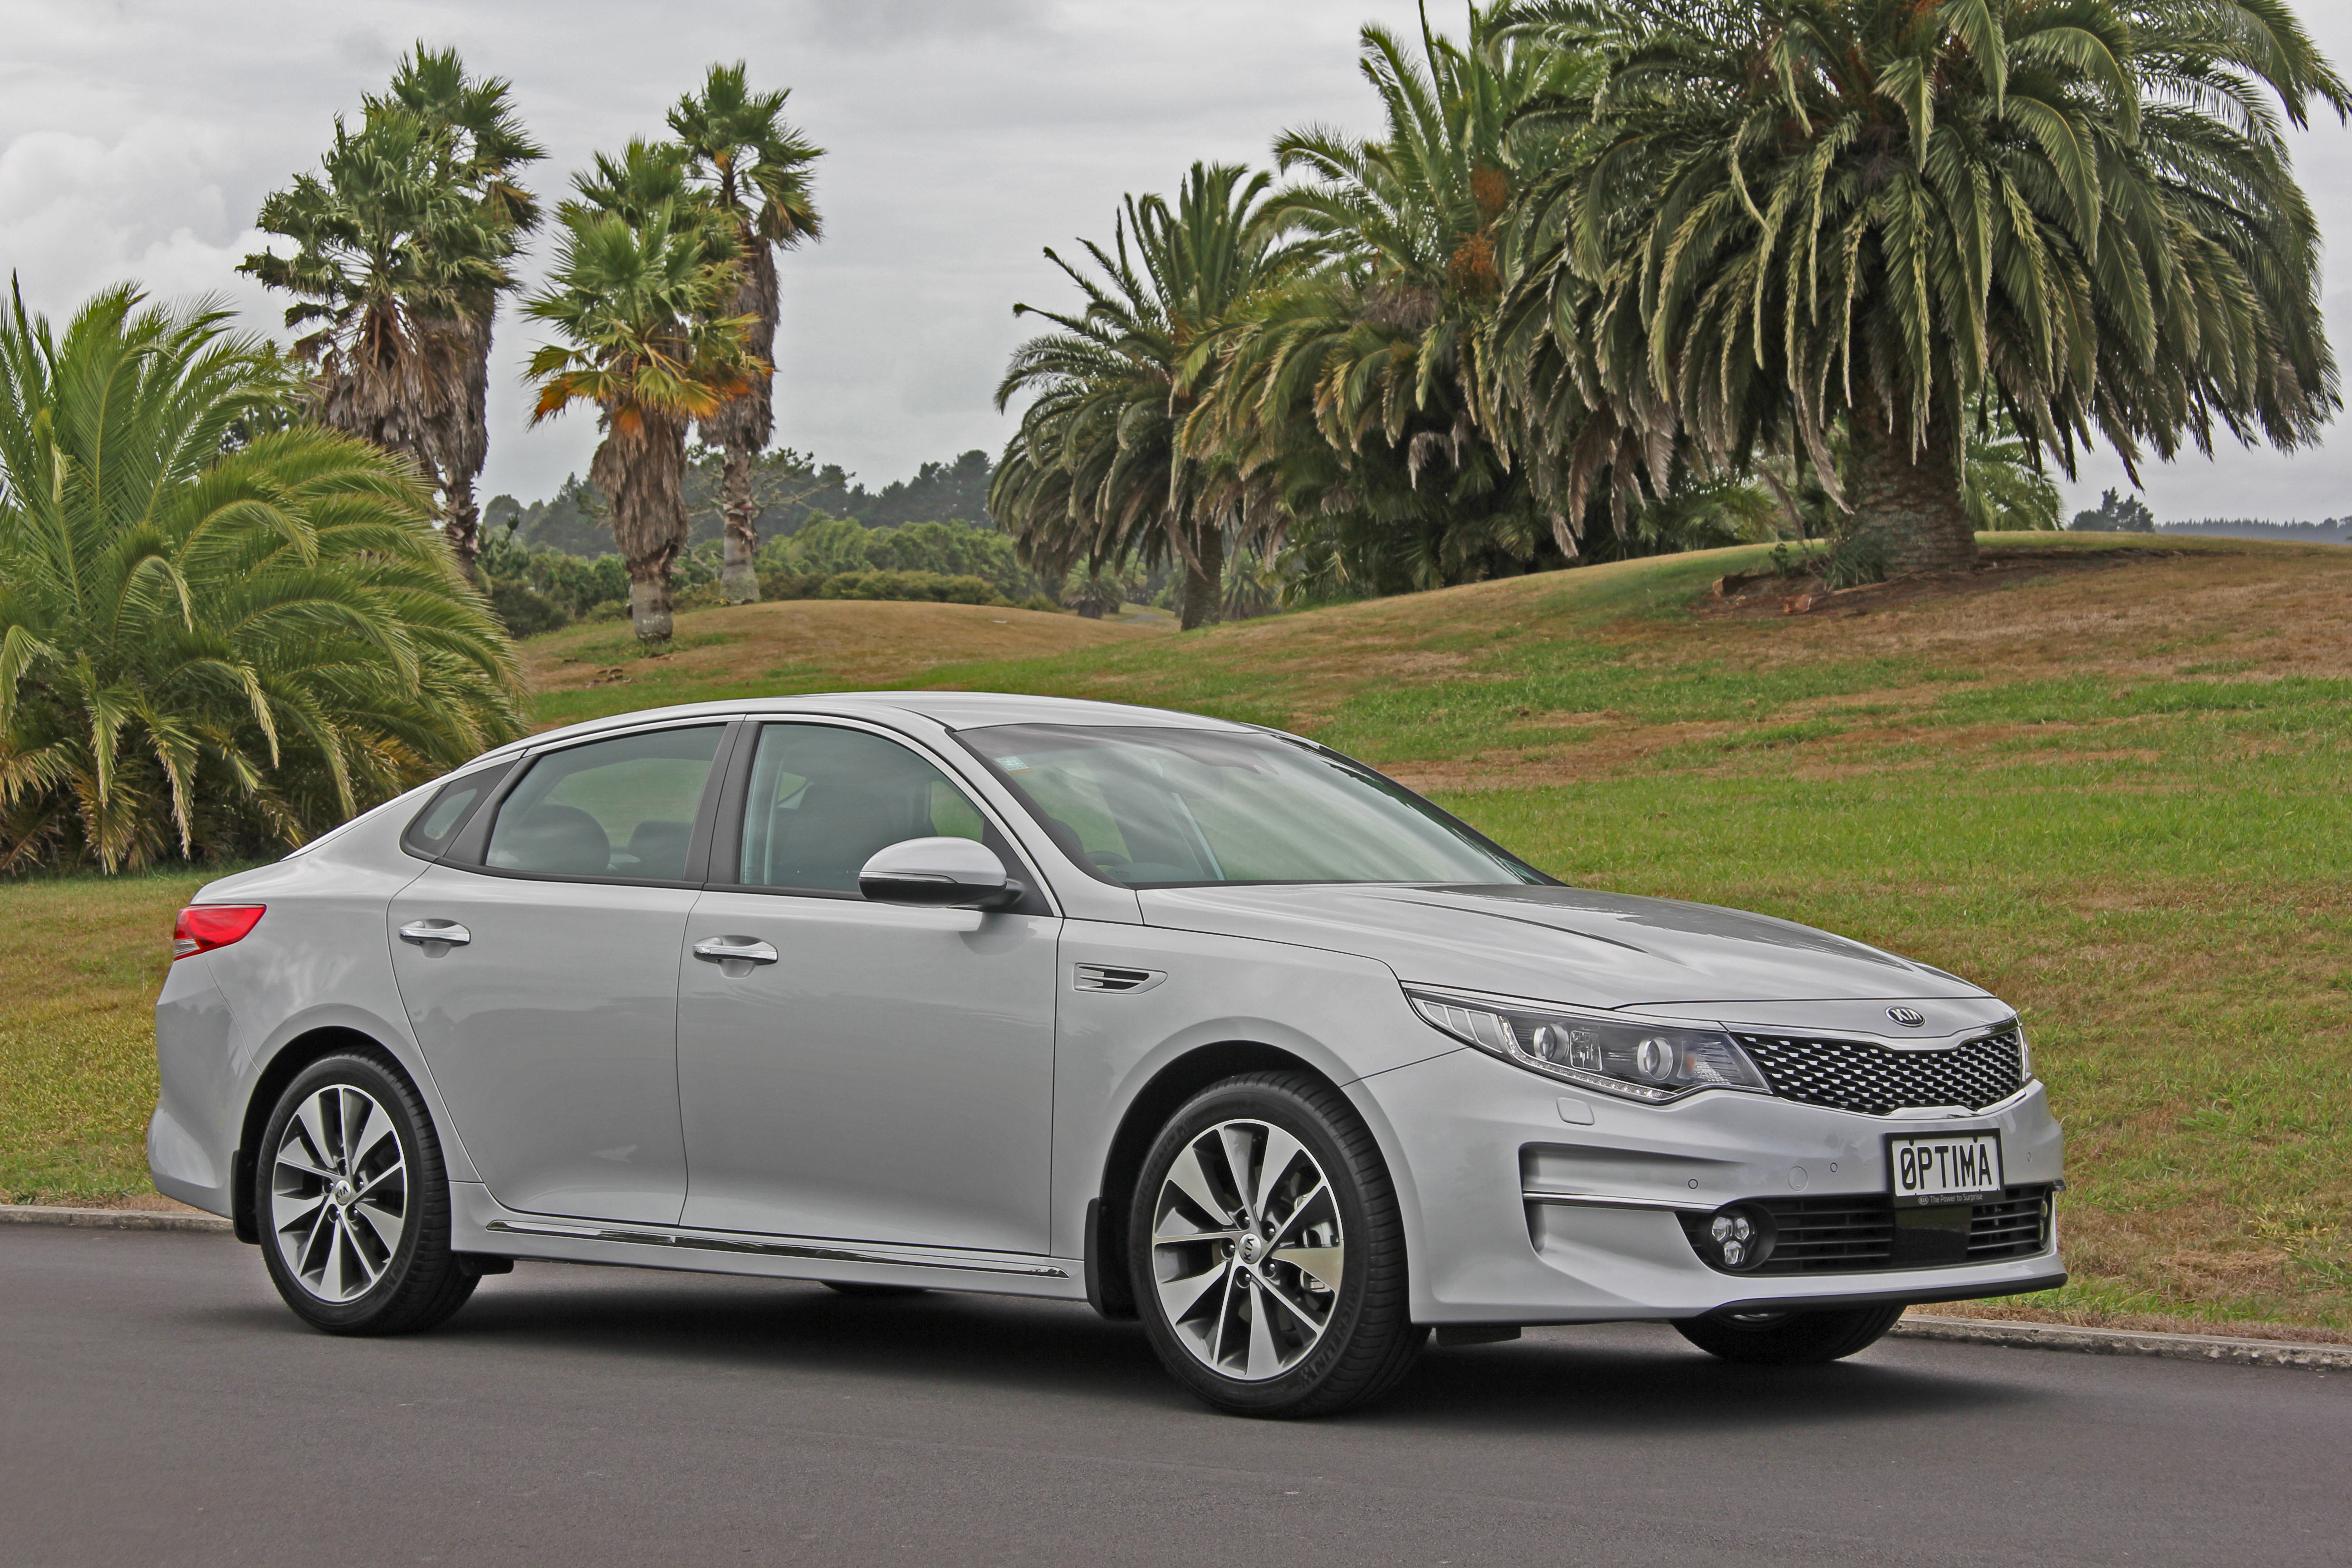 New Kia Optima: More space, luxury & safety · New SUVs ...